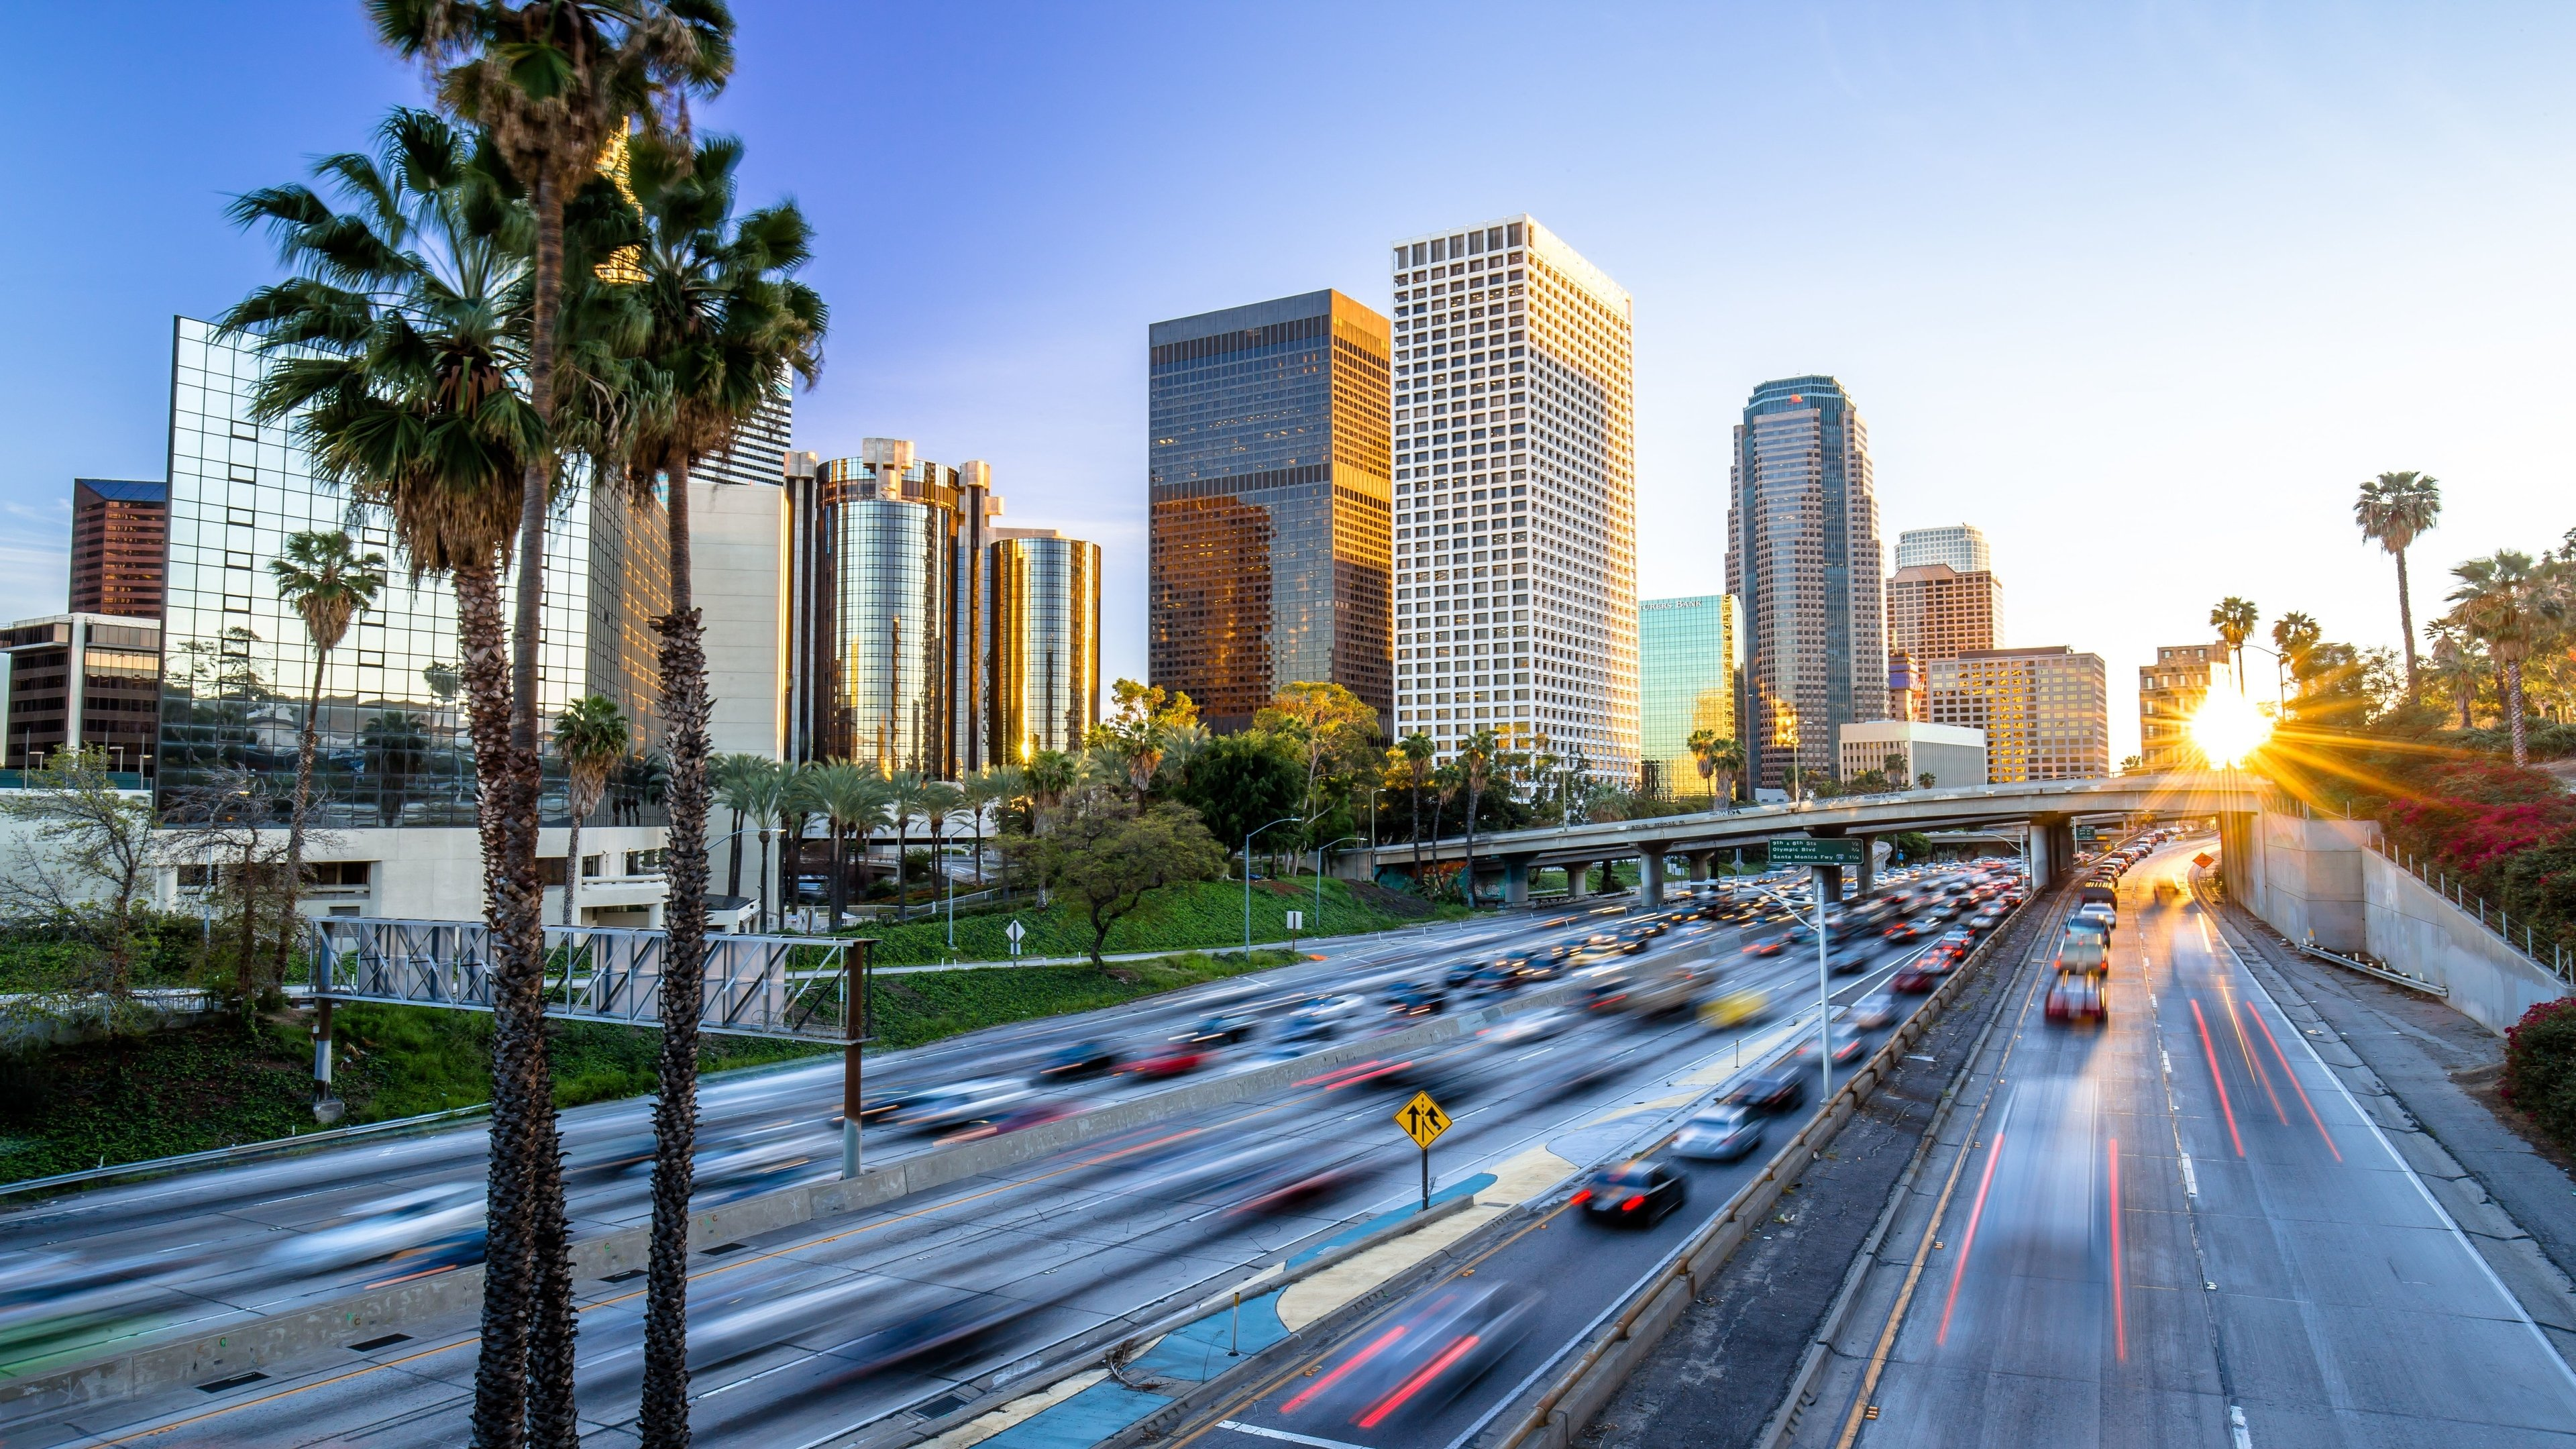 Downtown Los Angeles Wallpaper for iPhone X, 8, 7, 6 ... |Los Angeles City Phone Wallpaper